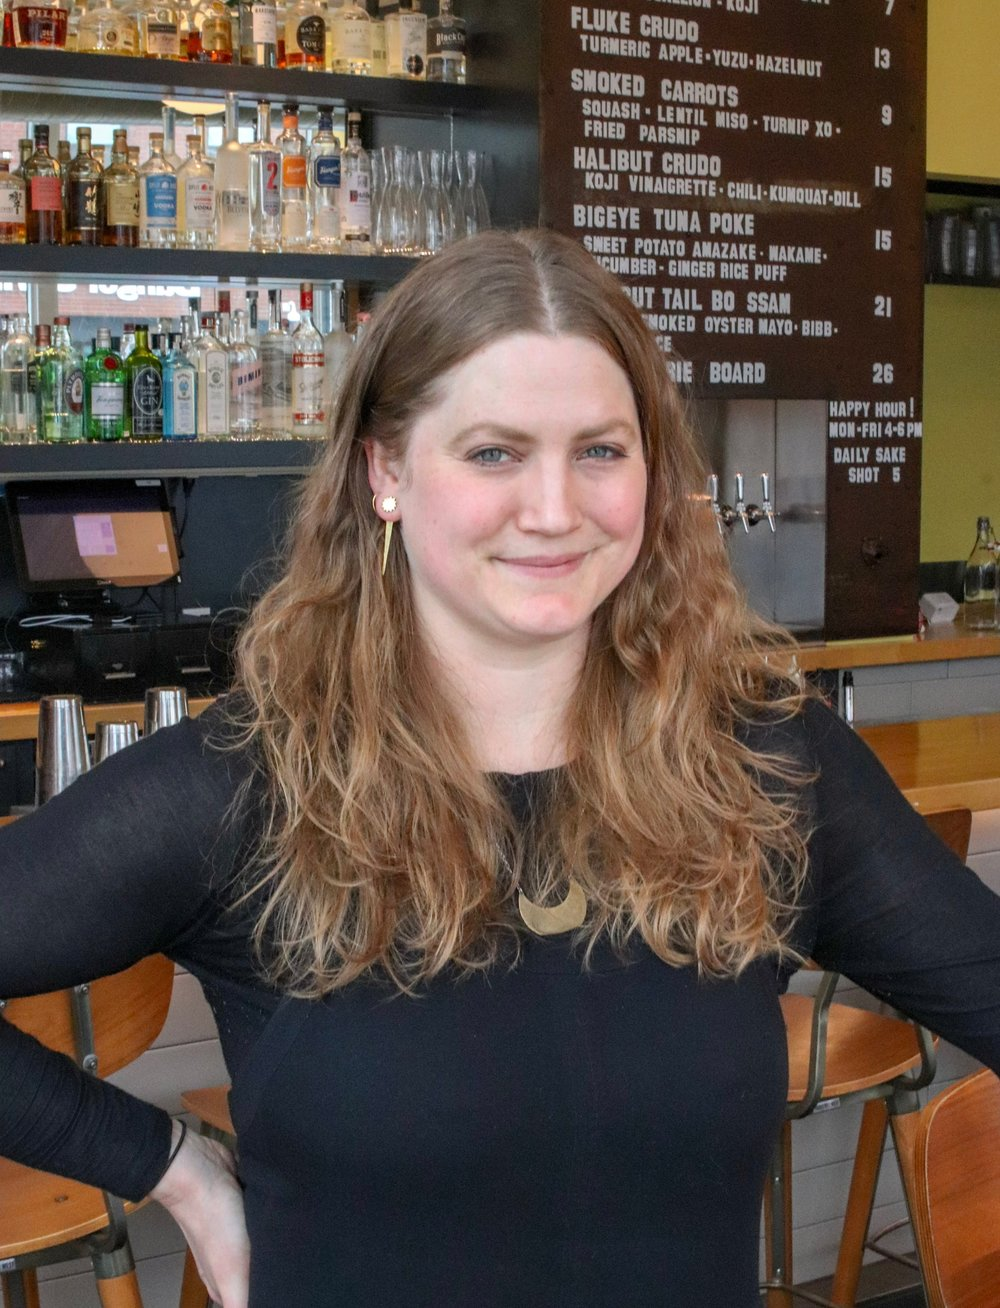 LAURA MYERS <br> The Honey Paw Assistant Manager